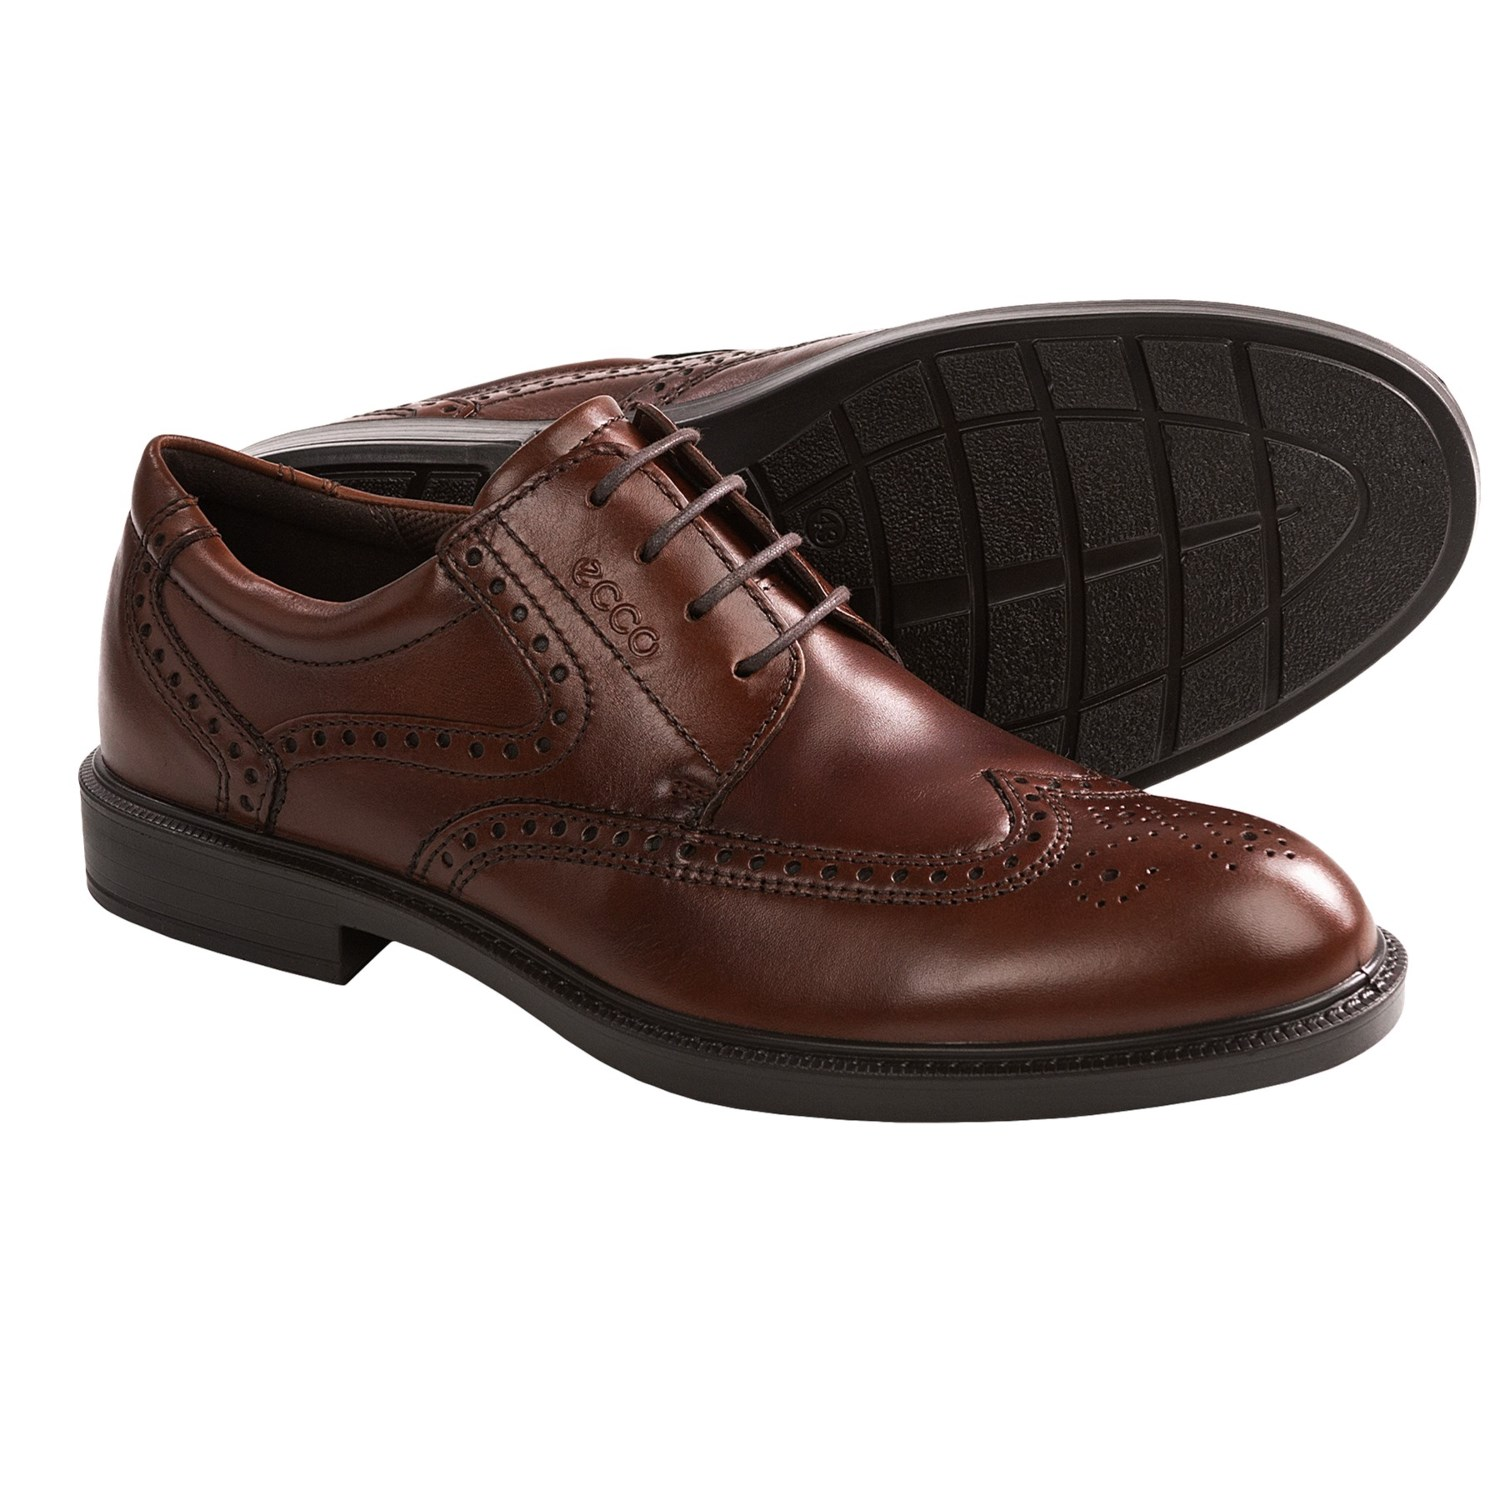 Shop for men's oxford shoes online at DSW, where we carry a variety of dress and casual oxford styles such as wingtips and cap toe shoes in leather, suede, and other materials. Men's Oxfords & Lace-Ups.